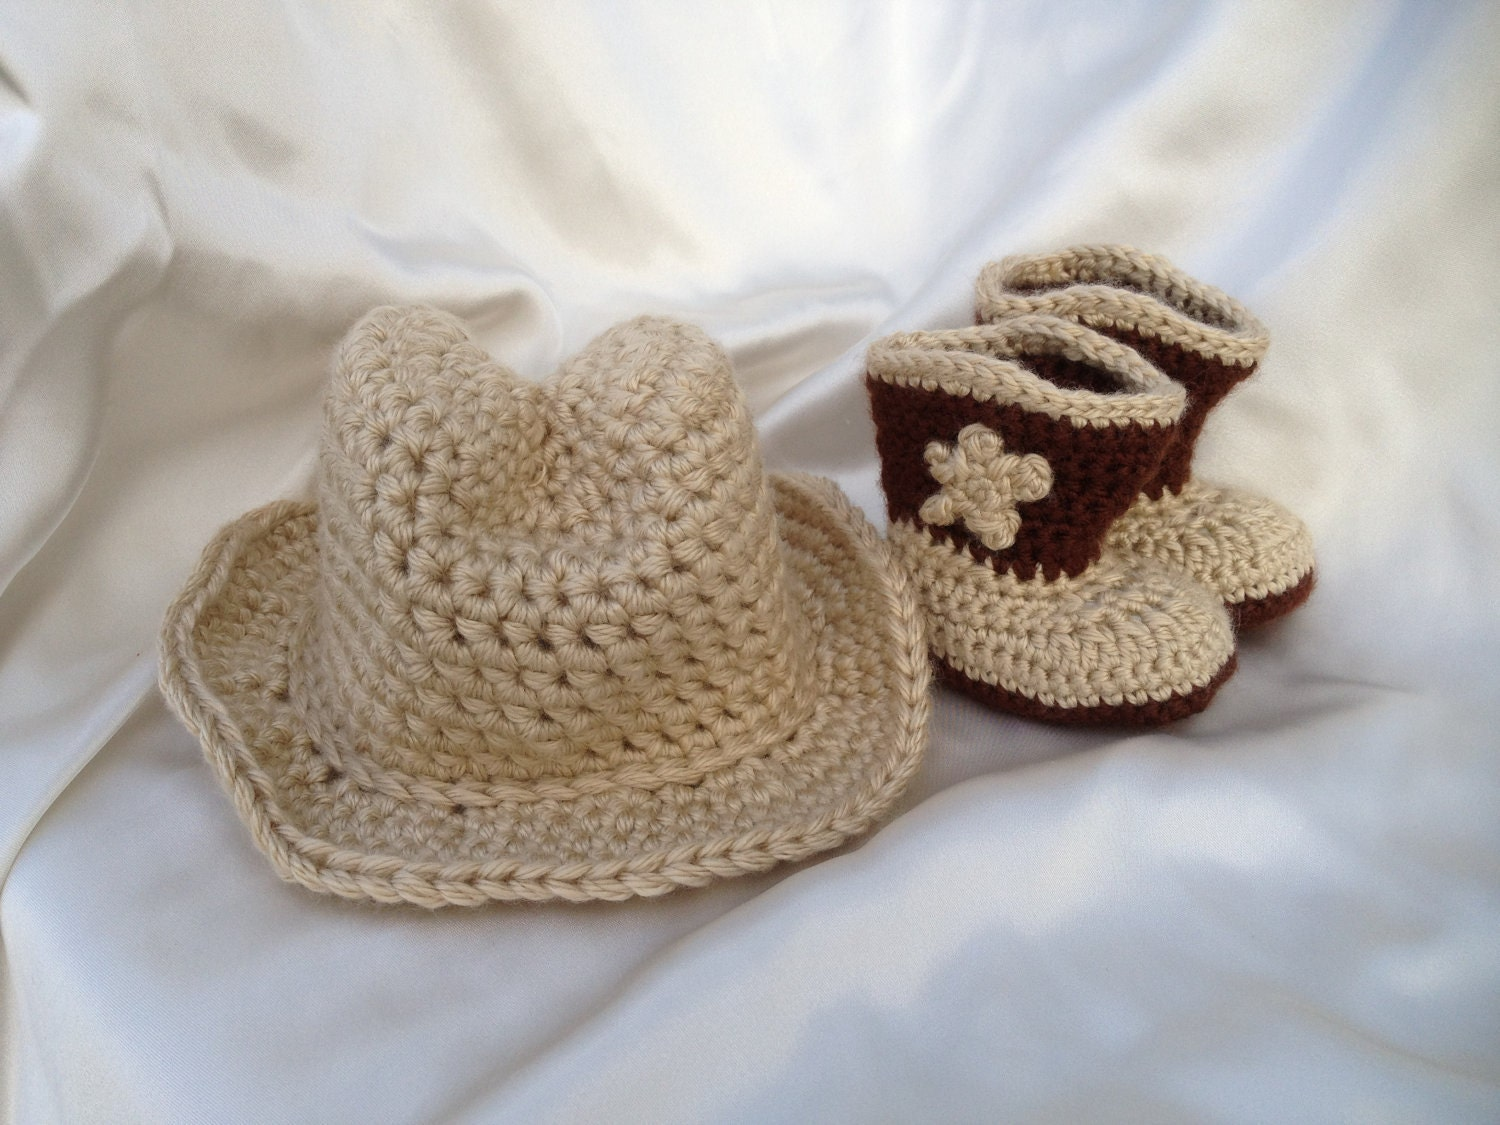 Crochet Cowboy Hat Pattern PDF Download - oukas.info